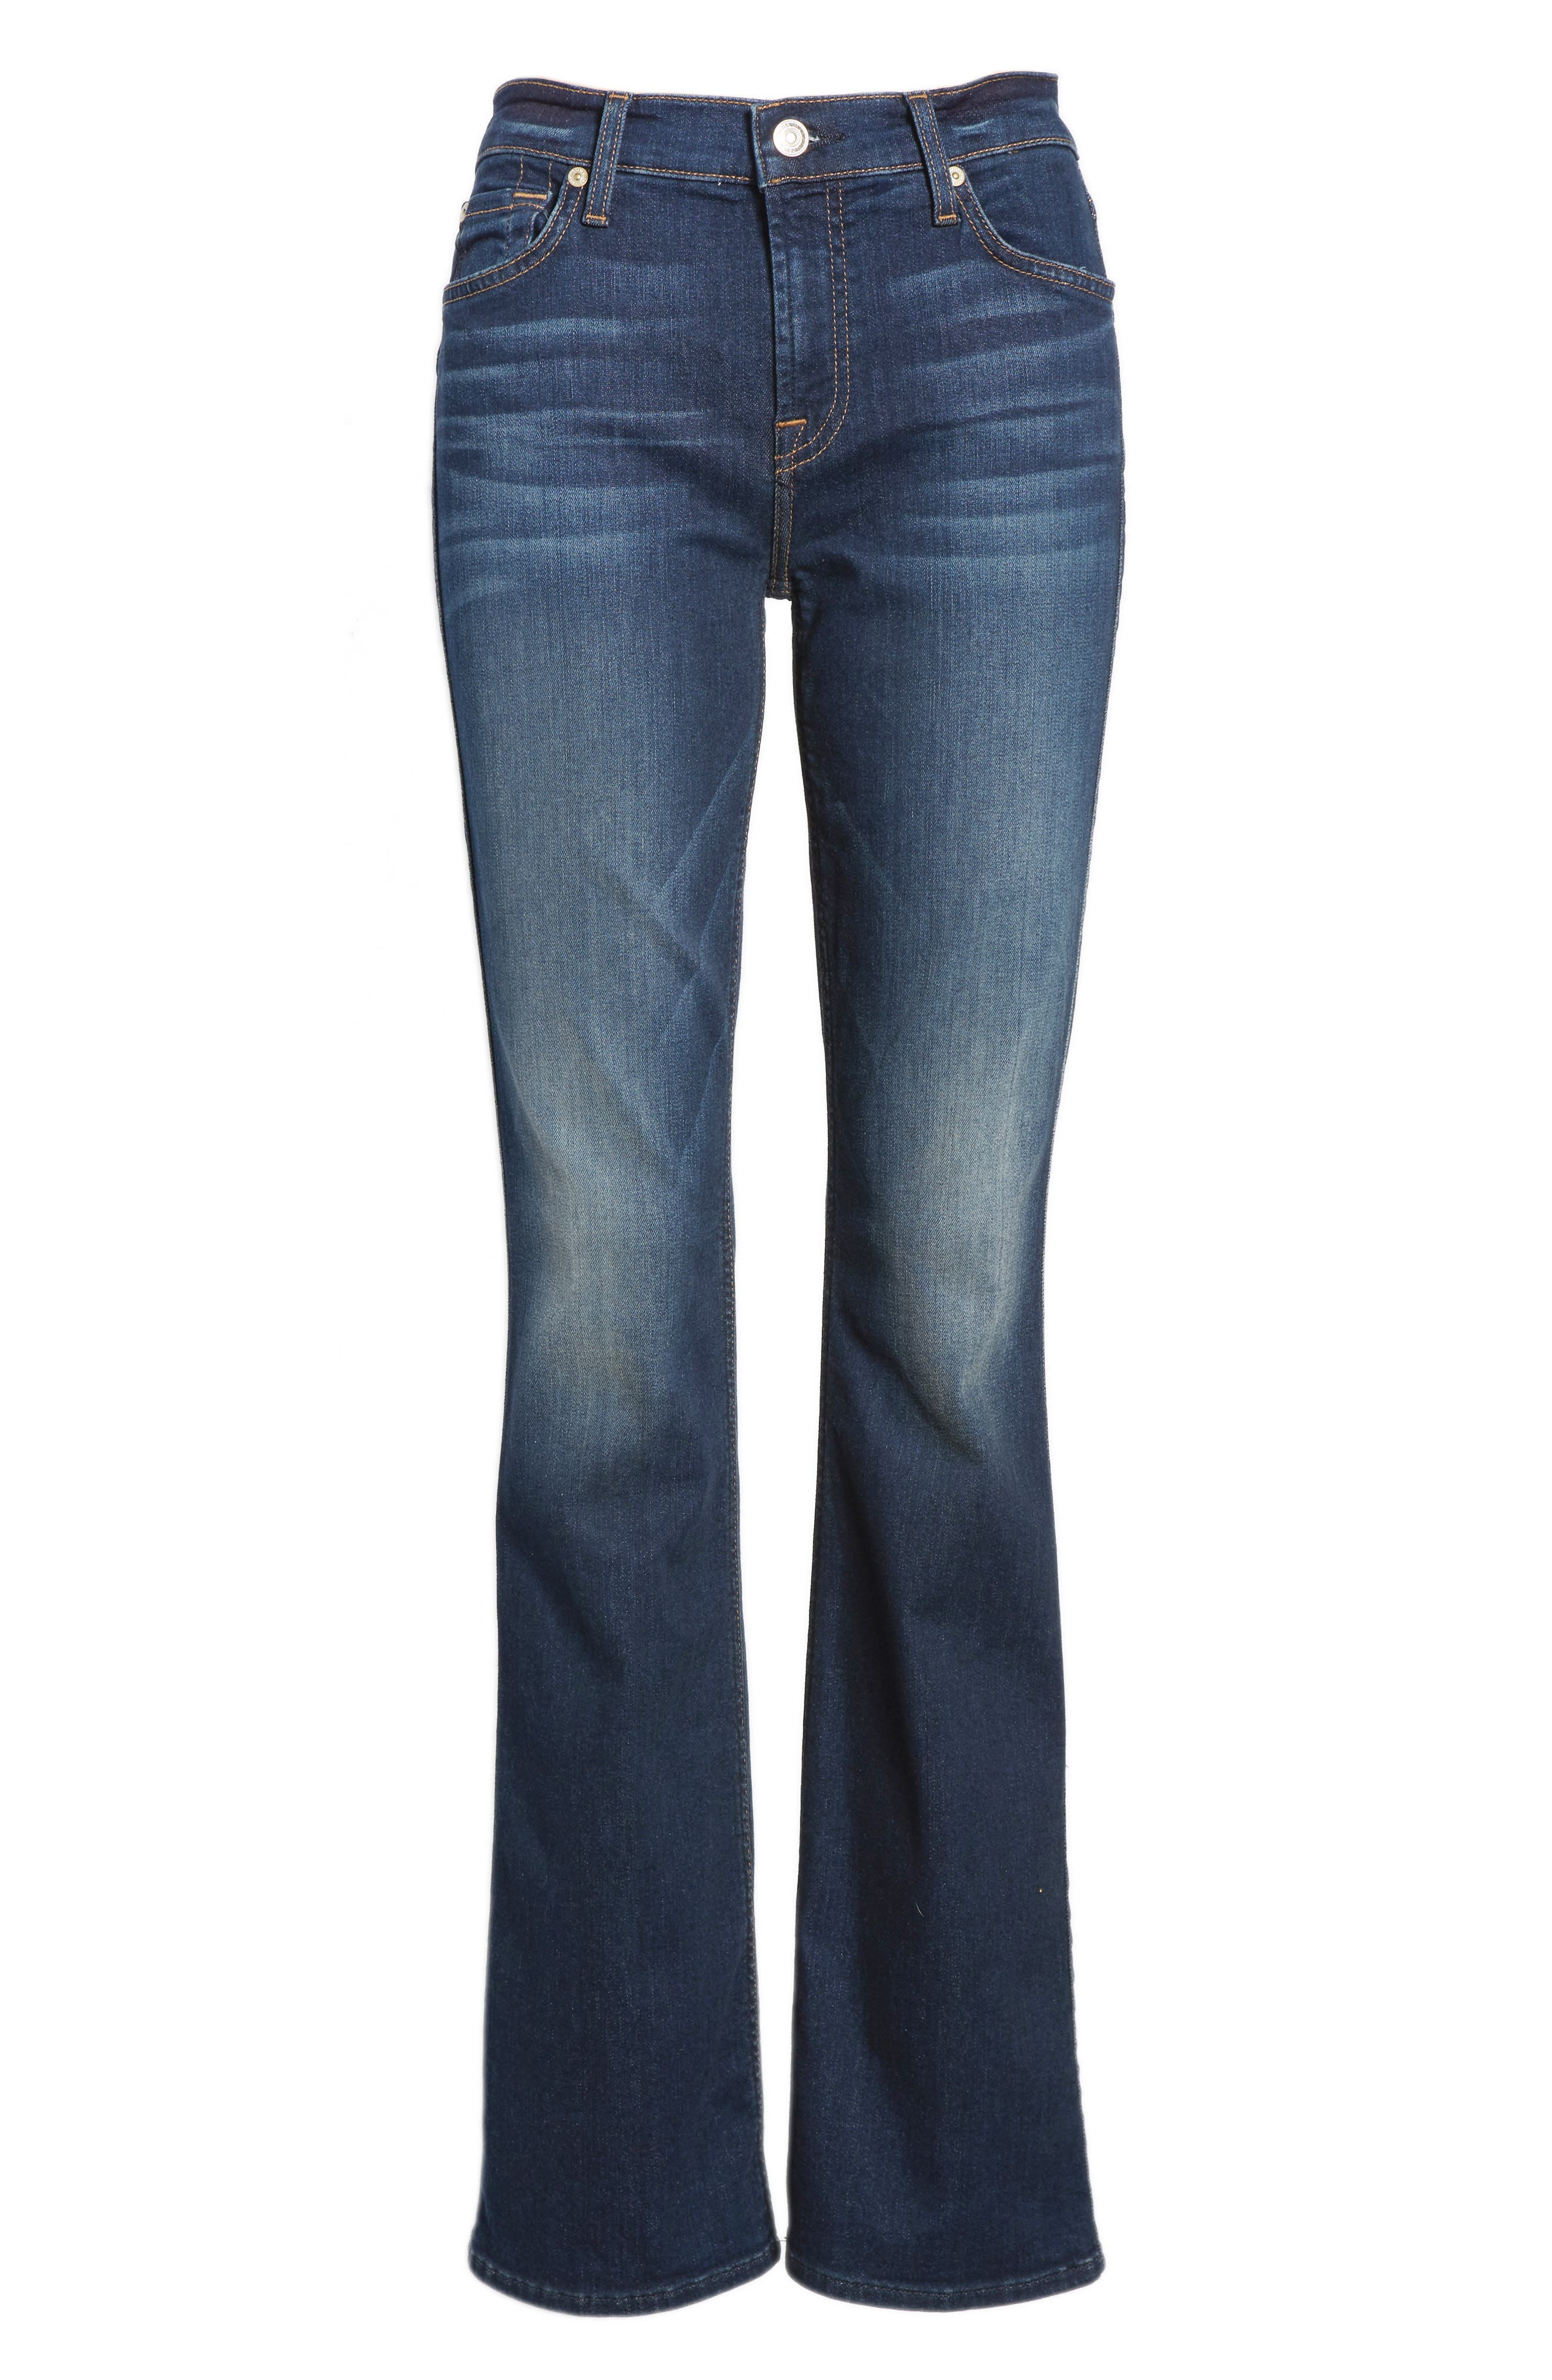 Iconic Bootcut Jeans,                             Alternate thumbnail 4, color,                             Moreno